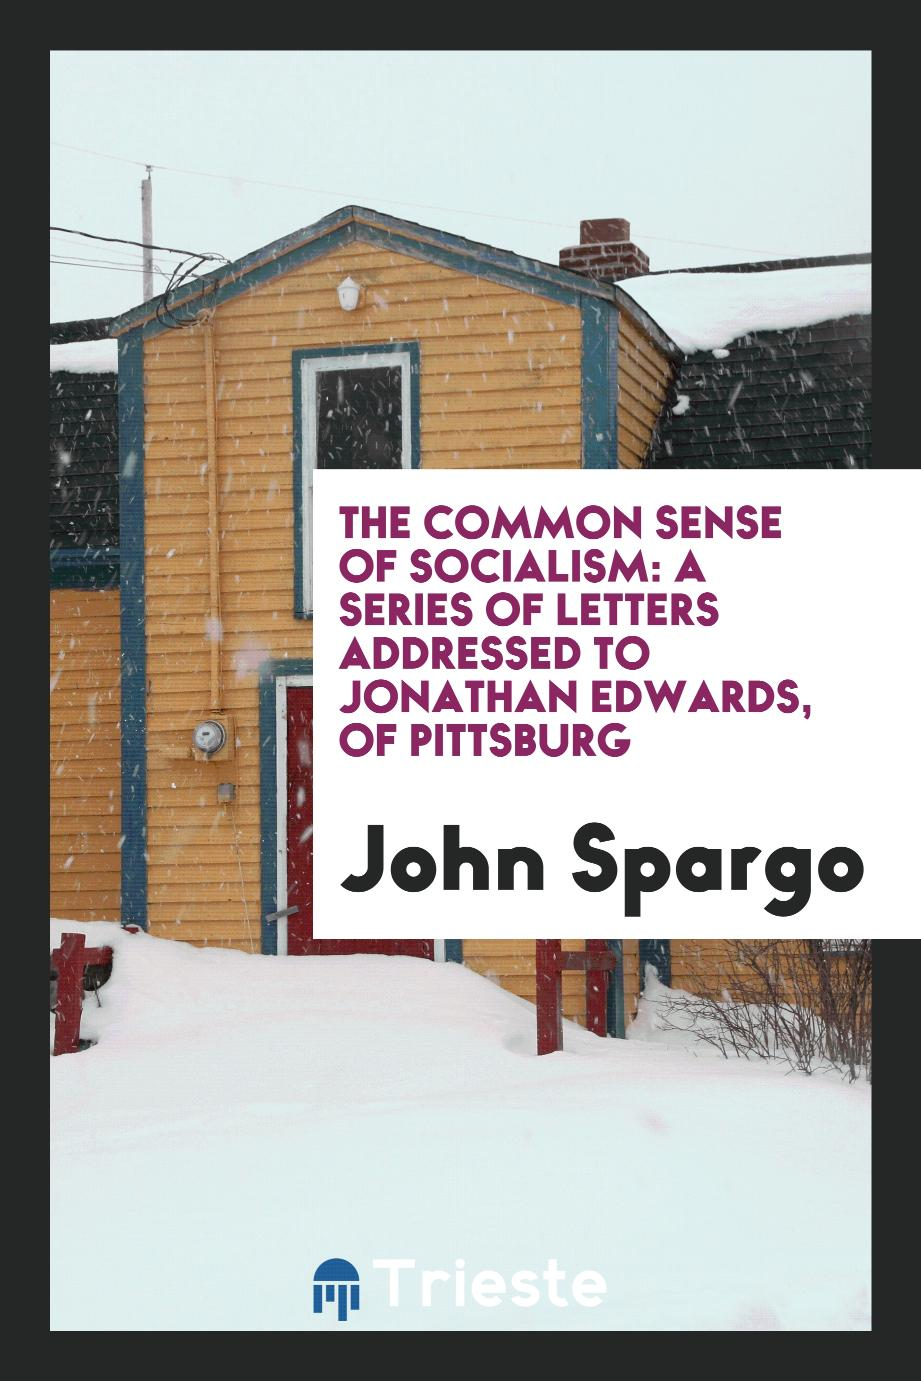 The Common Sense of Socialism: A Series of Letters Addressed to Jonathan Edwards, of Pittsburg